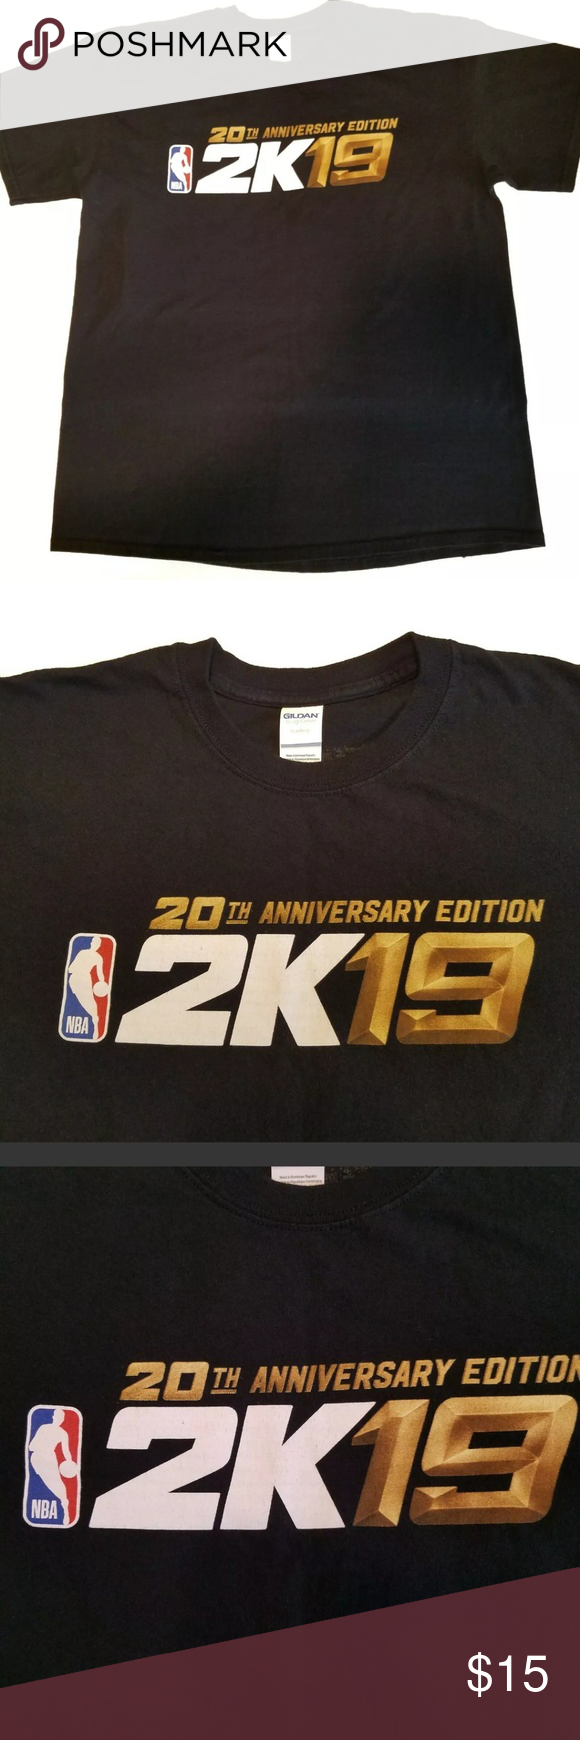 Nba 2k19 20th Anniversary Edition T Shirt Size L 2k19 Nba 20th Anniversary Edition Large T Shirt Excellemt Pre Owned Conditi T Shirt Shirt Size Clothes Design